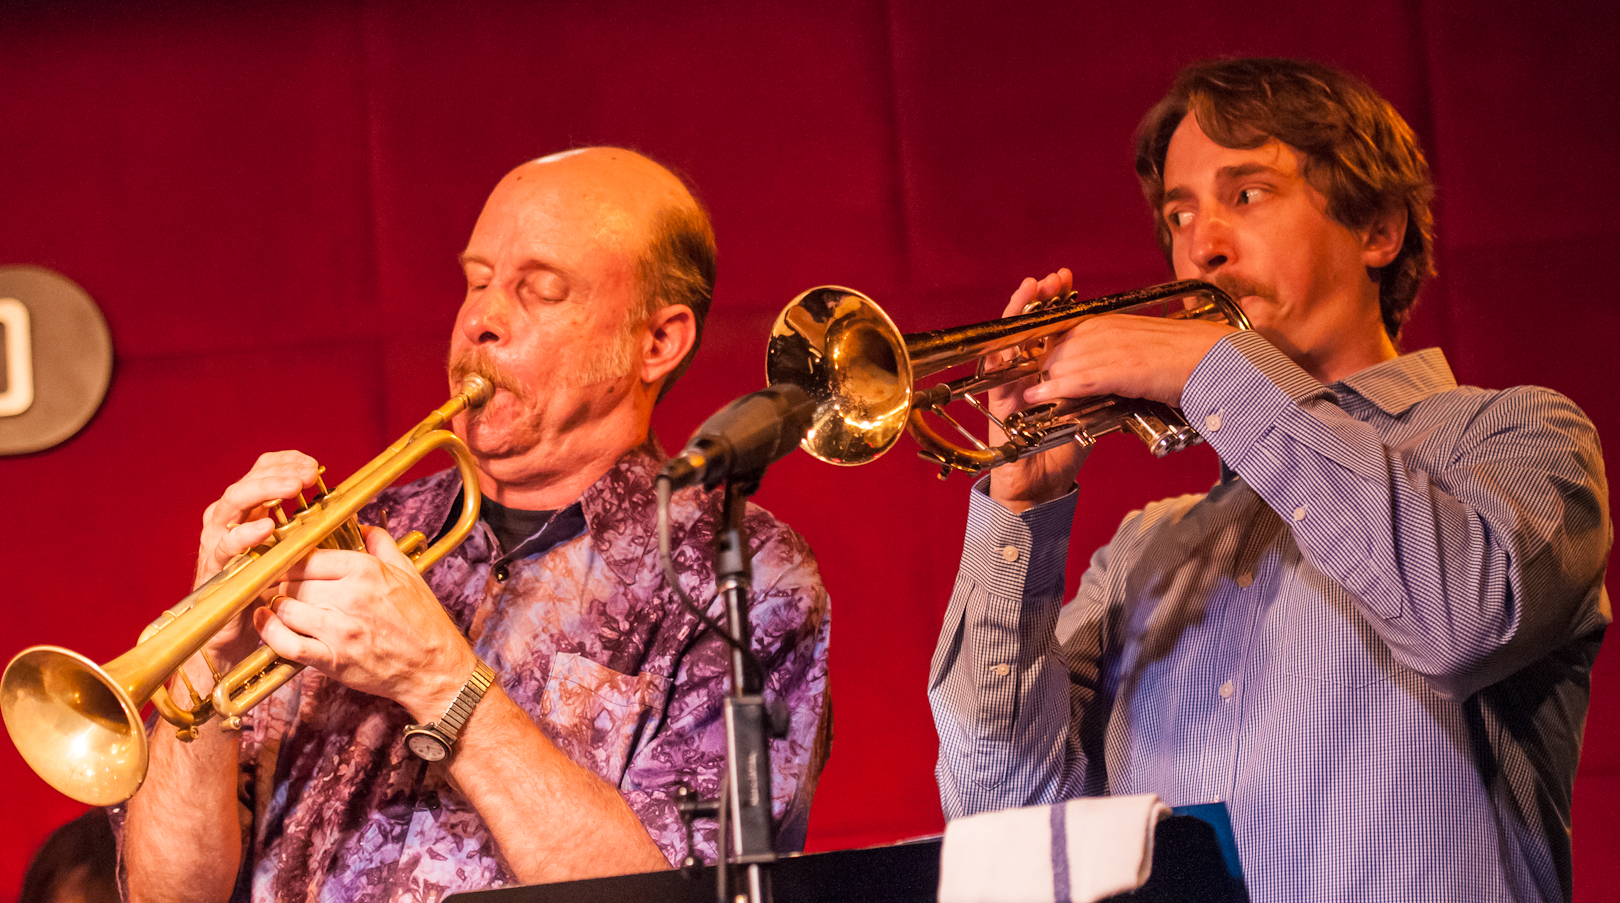 Tom Halter and Dan Rosenthal with the Either/Orchestra at the Jazz Standard